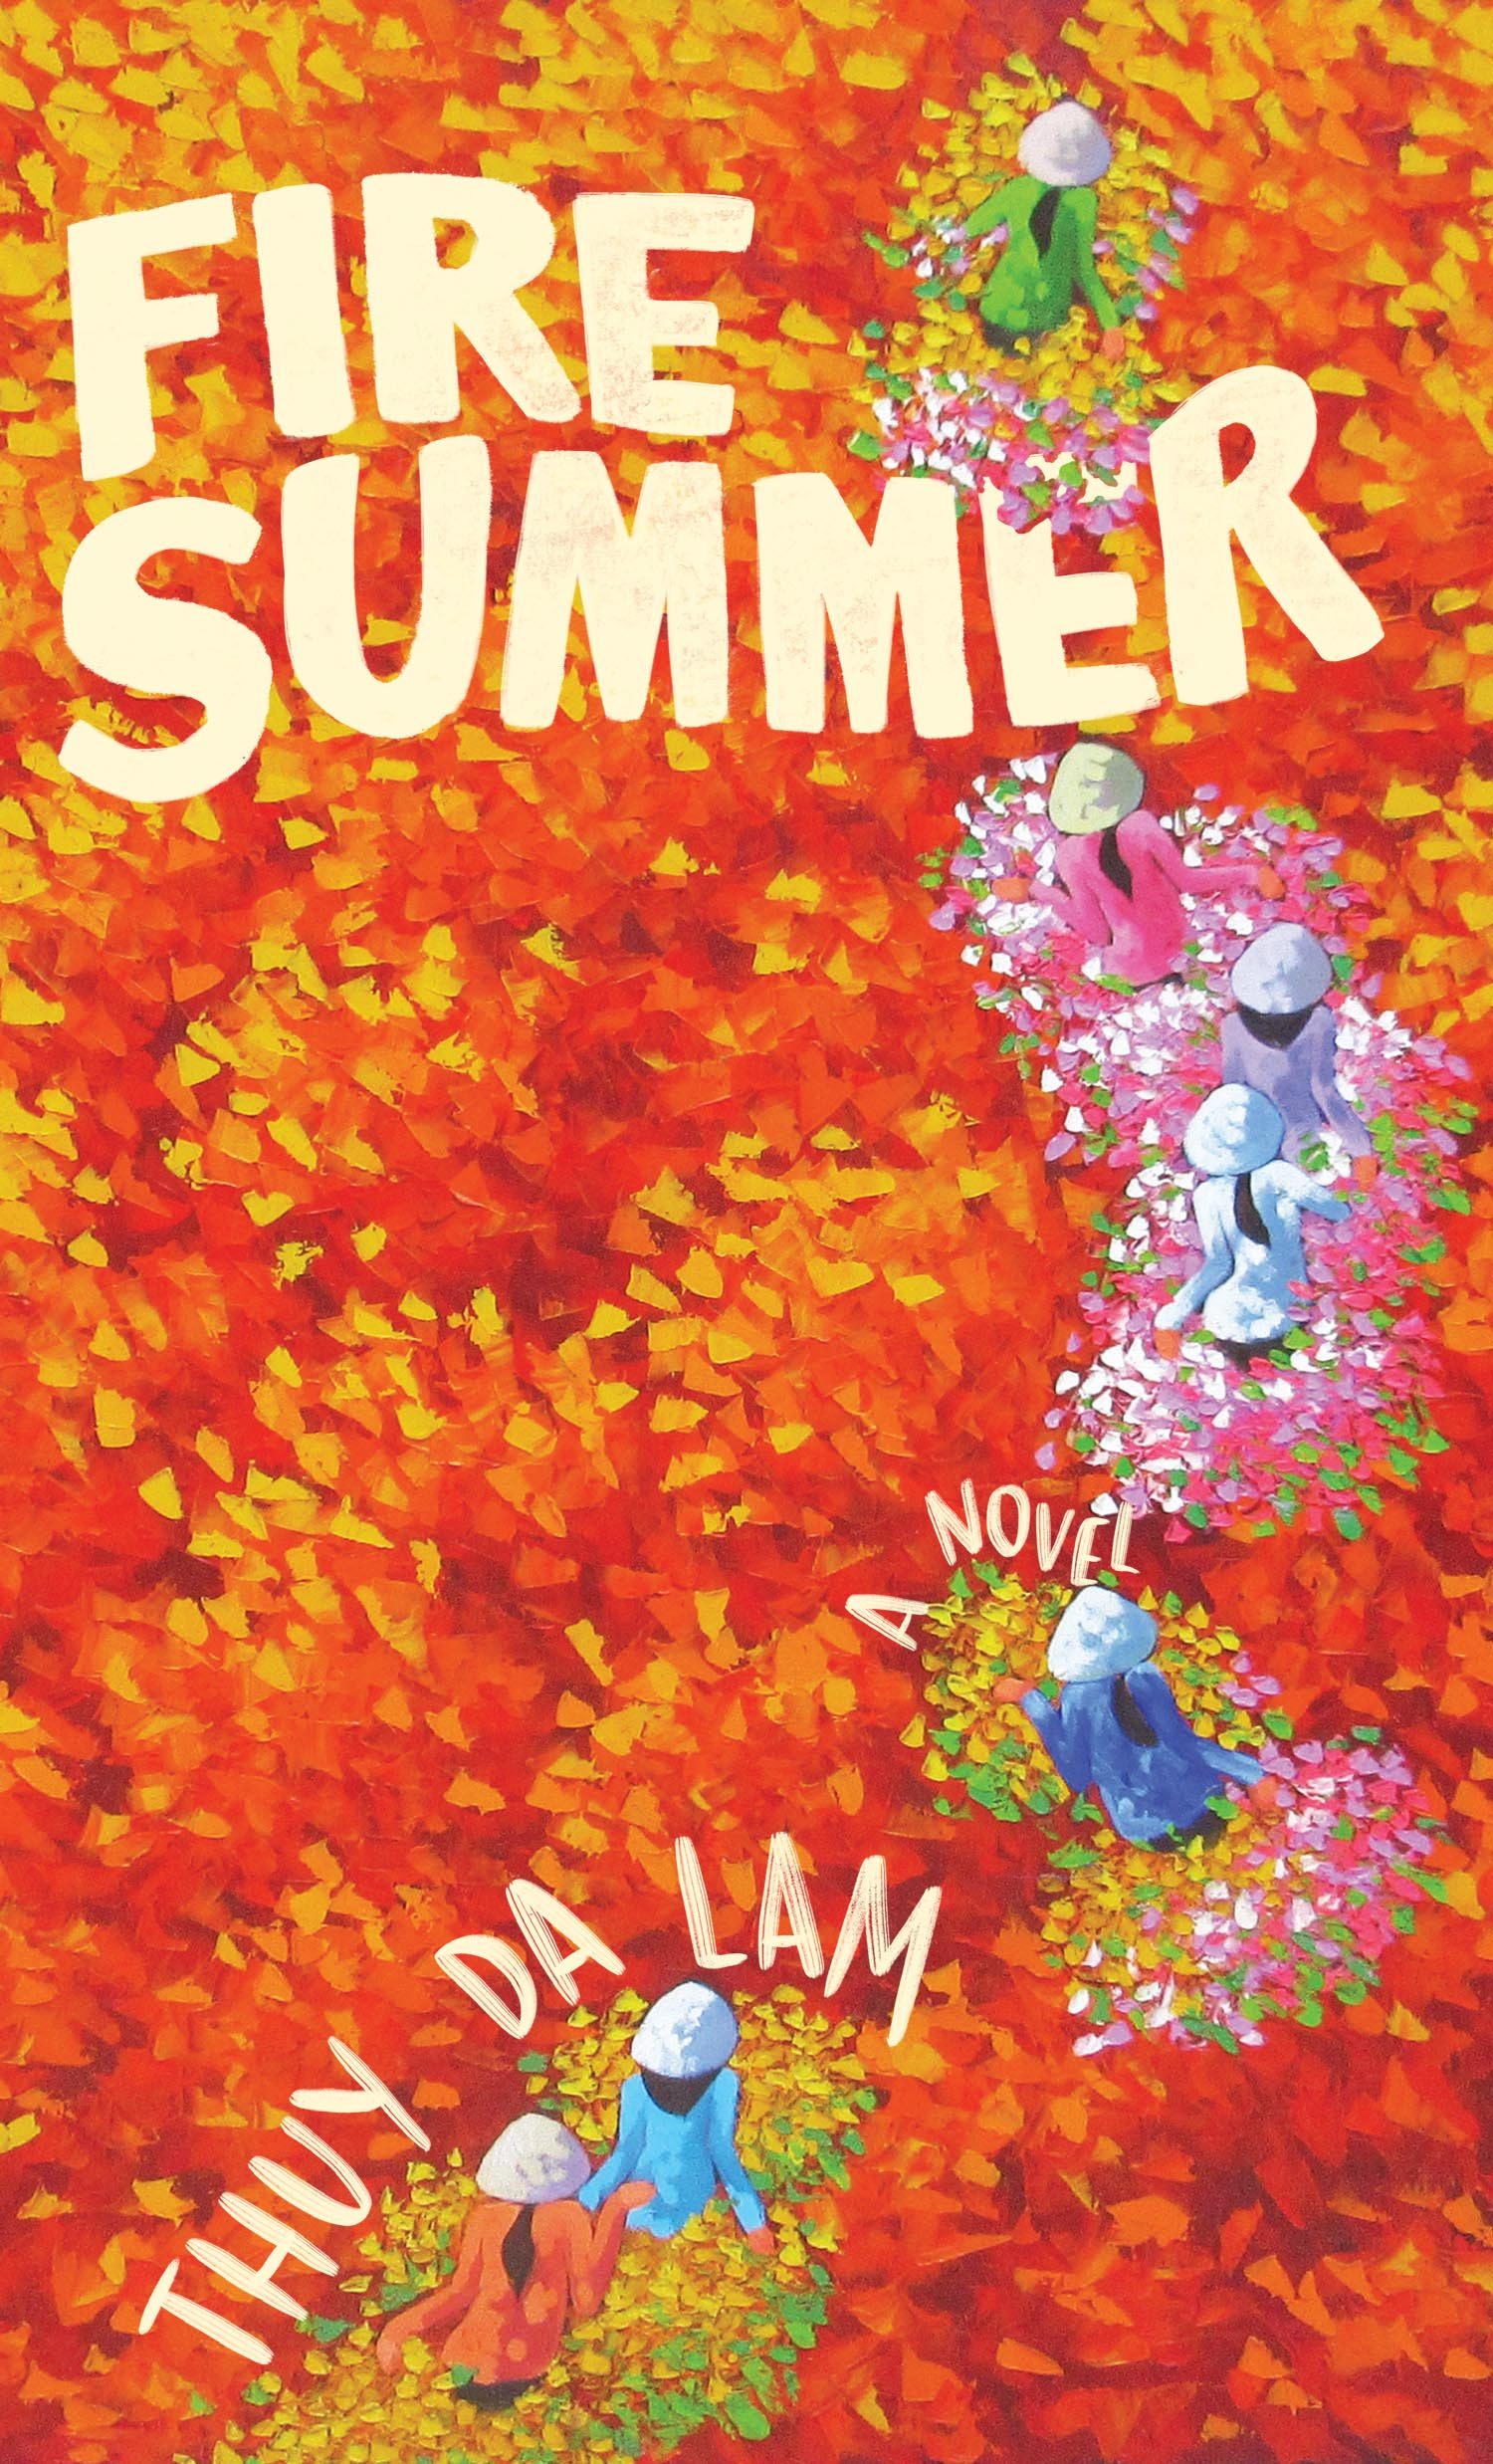 A red and yellow overgrown field with people in colorful long sleve shirts walking through it and yellow script that reads Fire Summer a novel by Thuy Da Lam